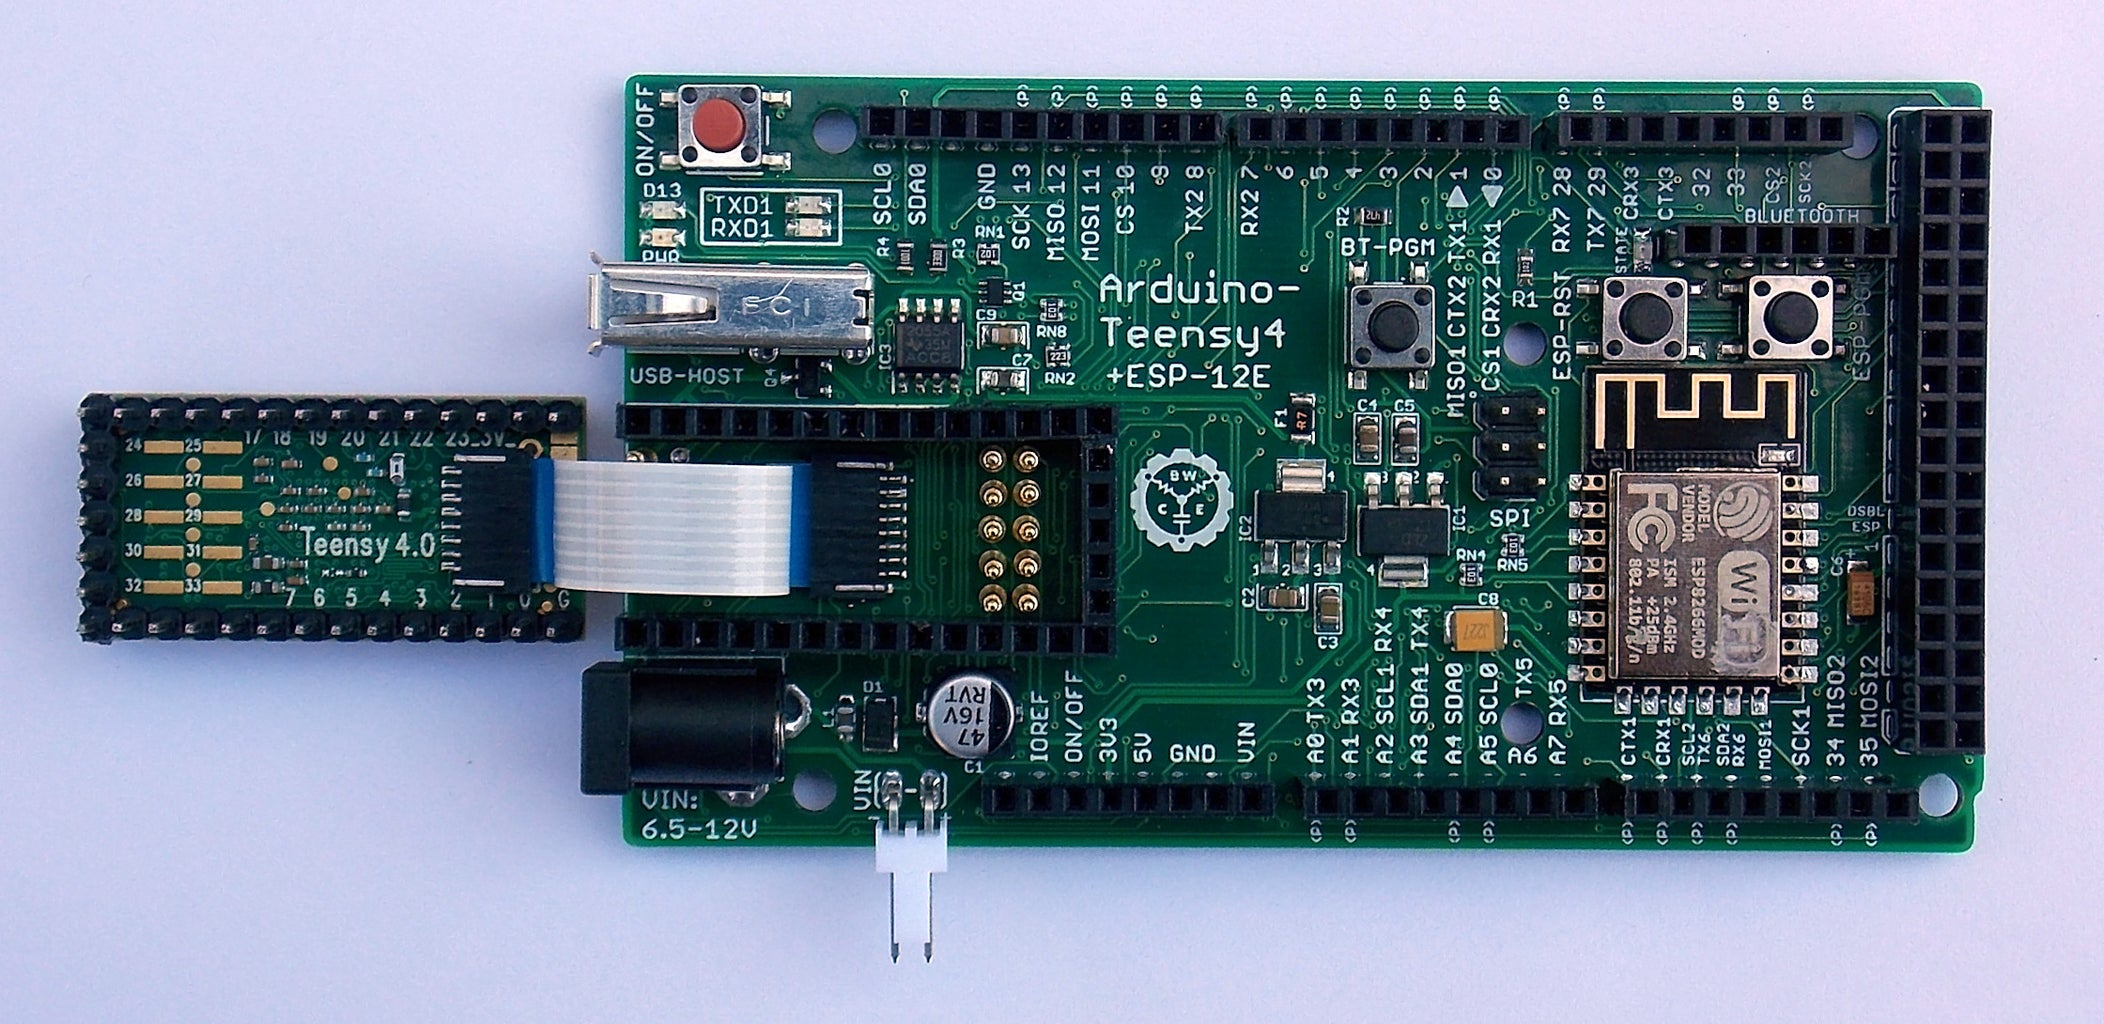 Connect Flatflex to Teensy and Install in Socket